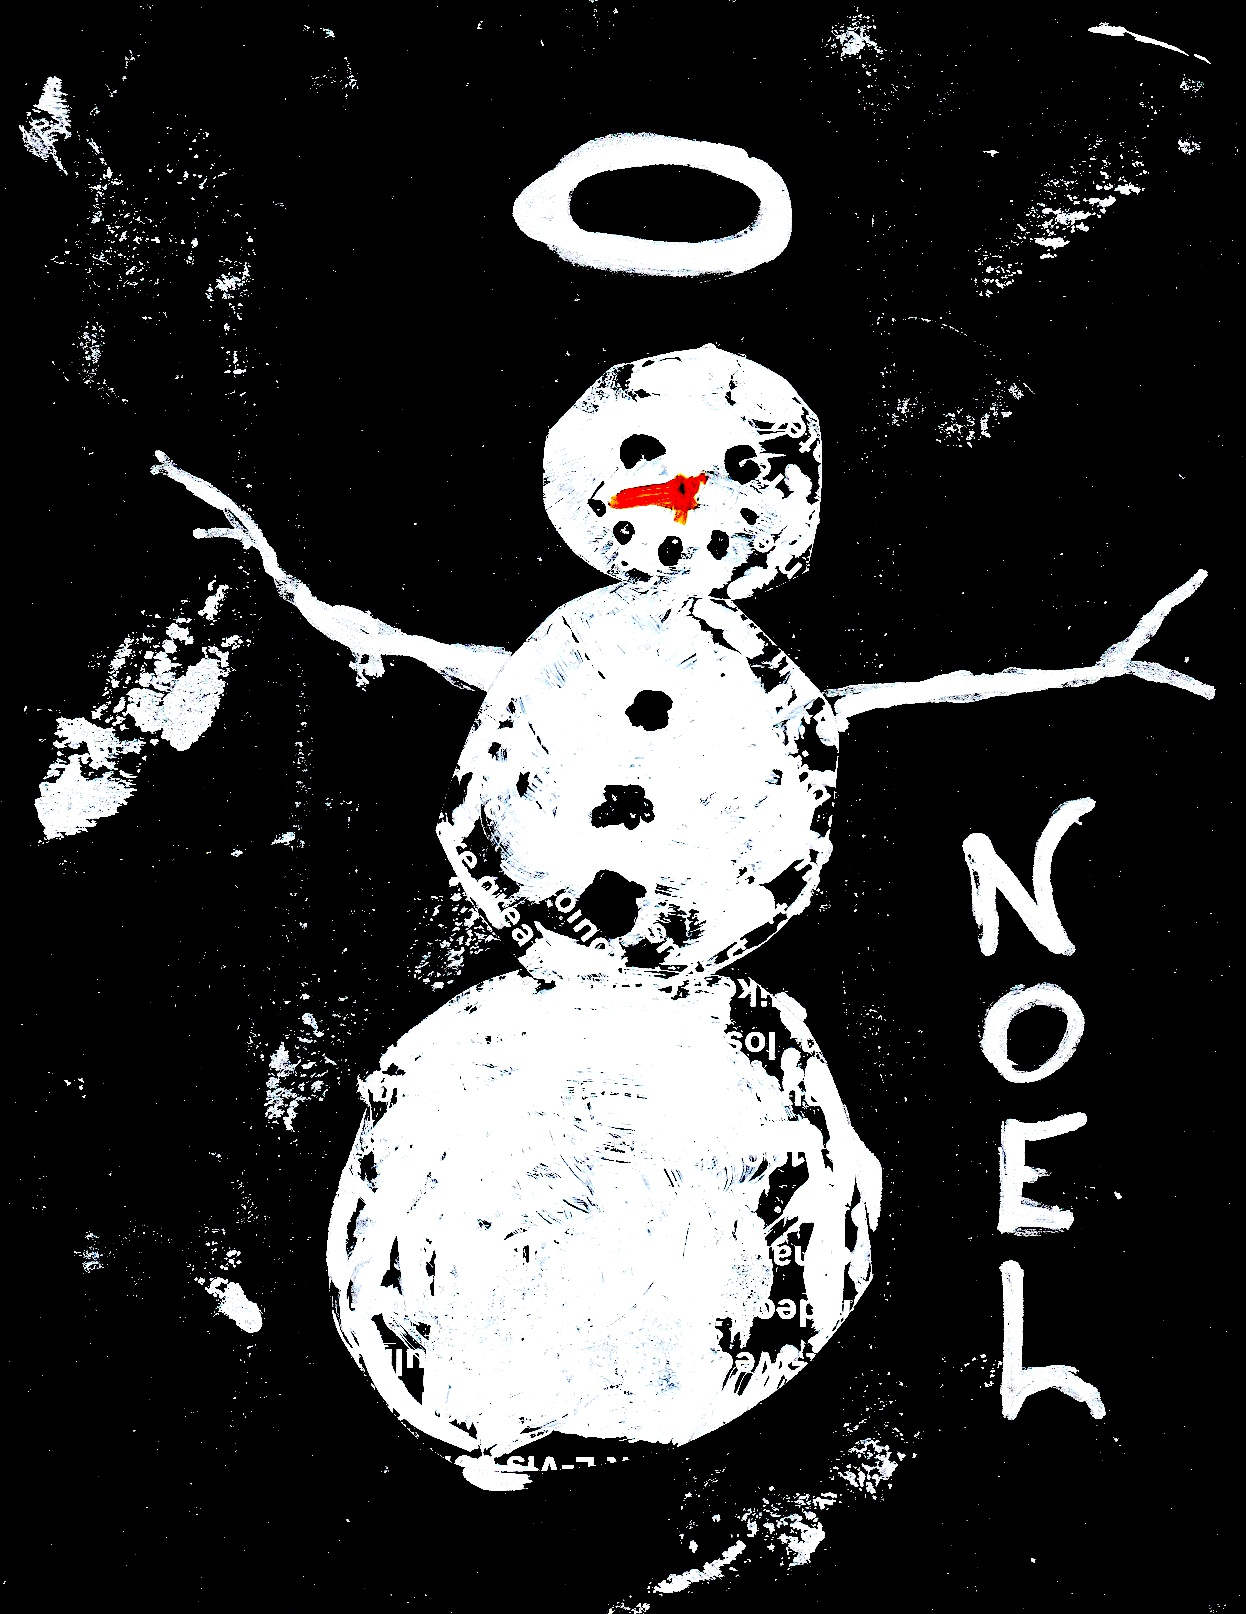 Self Portrait As A Snowman by Jeffrey Cyphers Wright